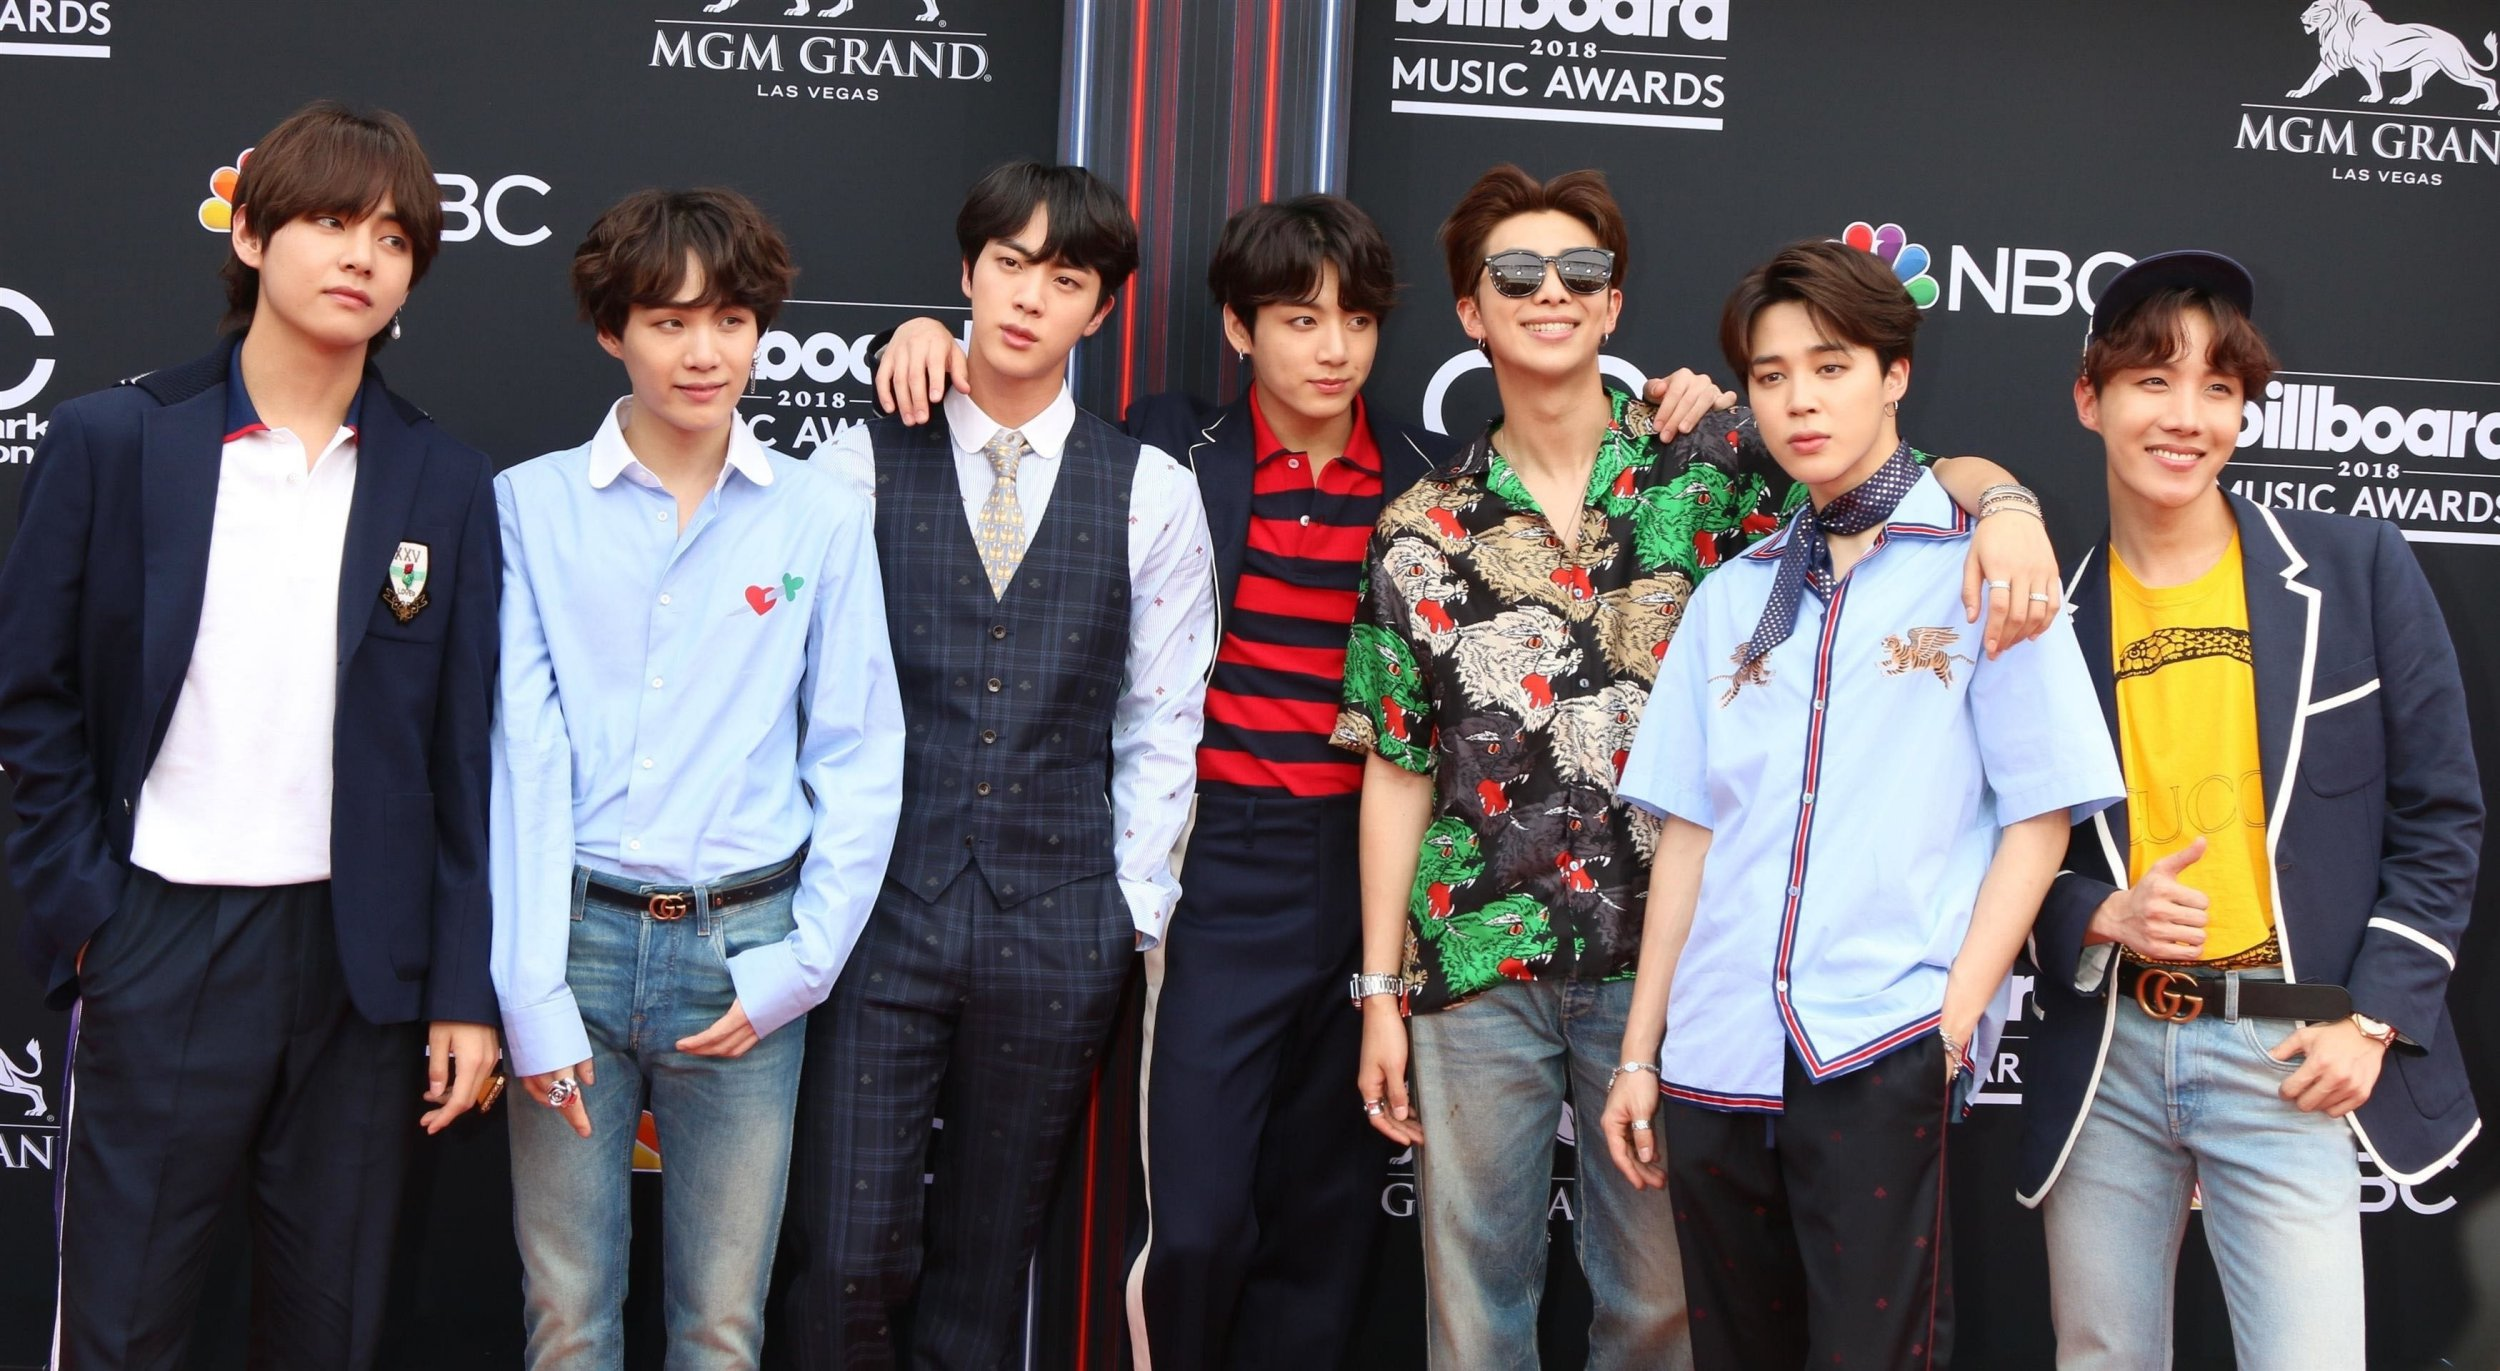 Las Vegas, NV - Celebrities on the red carpet at the 2018 Billboard Music Awards held at the MGM Grand Garden Arena. Pictured: BTS, Jin, Suga, J-Hope, RM, Jimin, V, Jungkook, Rap Monster BACKGRID USA 20 MAY 2018 BYLINE MUST READ: Parisa / BACKGRID USA: +1 310 798 9111 / usasales@backgrid.com UK: +44 208 344 2007 / uksales@backgrid.com *UK Clients - Pictures Containing Children Please Pixelate Face Prior To Publication*